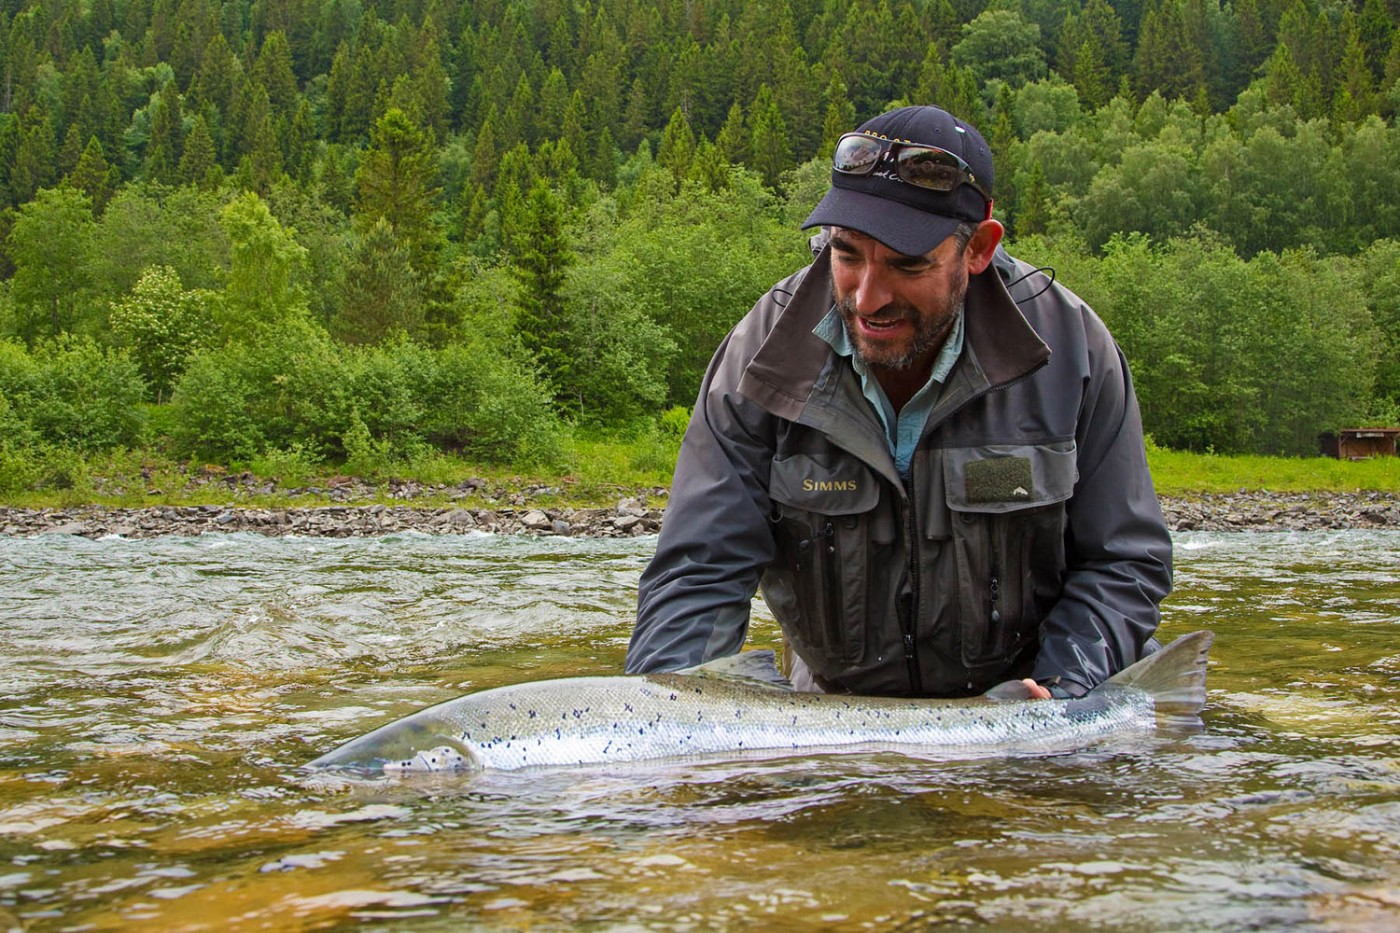 Sweet waters adventure blog archive it 39 s ok to be for Fly fishing oklahoma